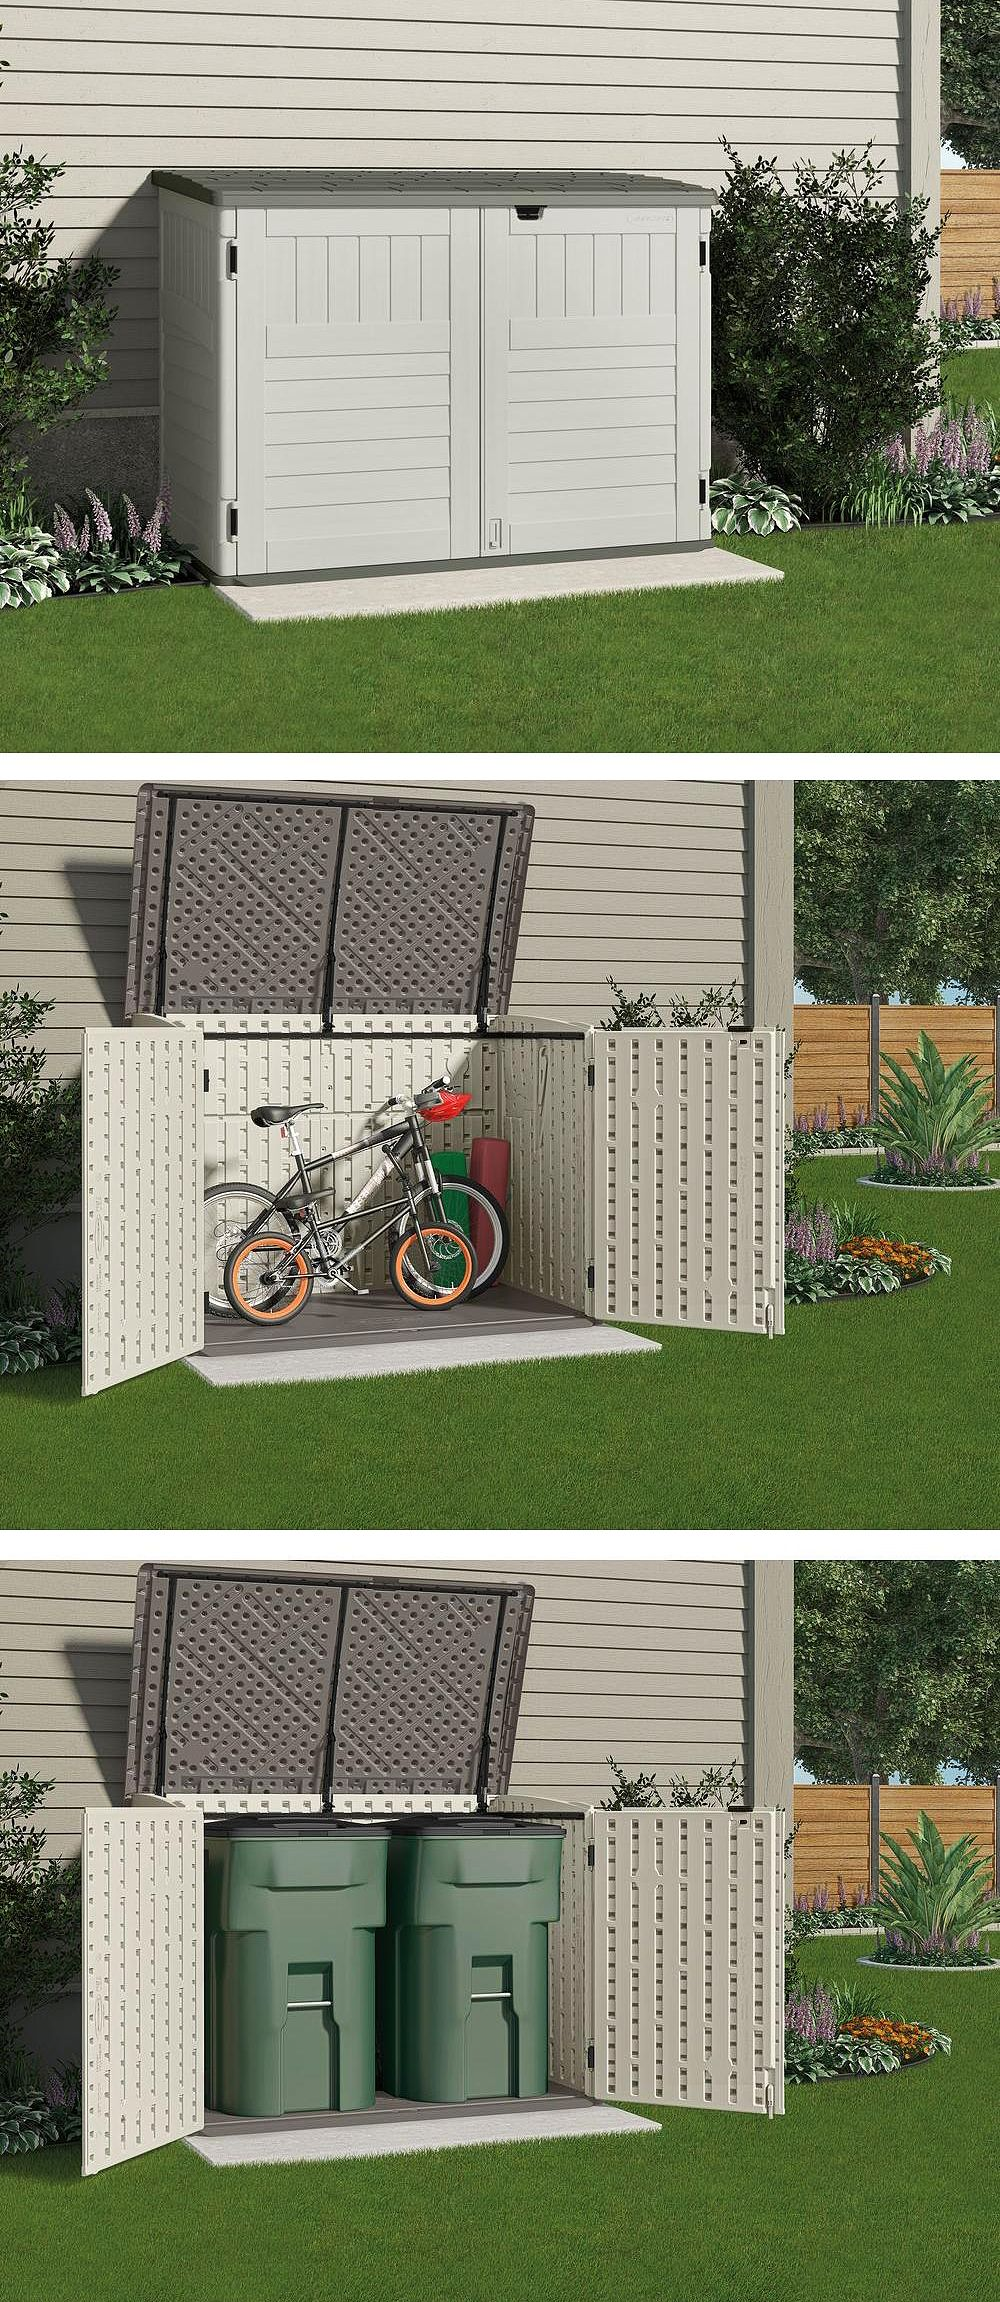 This small storage shed is just the right size to store your bicycles safely or to hide garbage cans it wont take up a lot of room from your backyard or